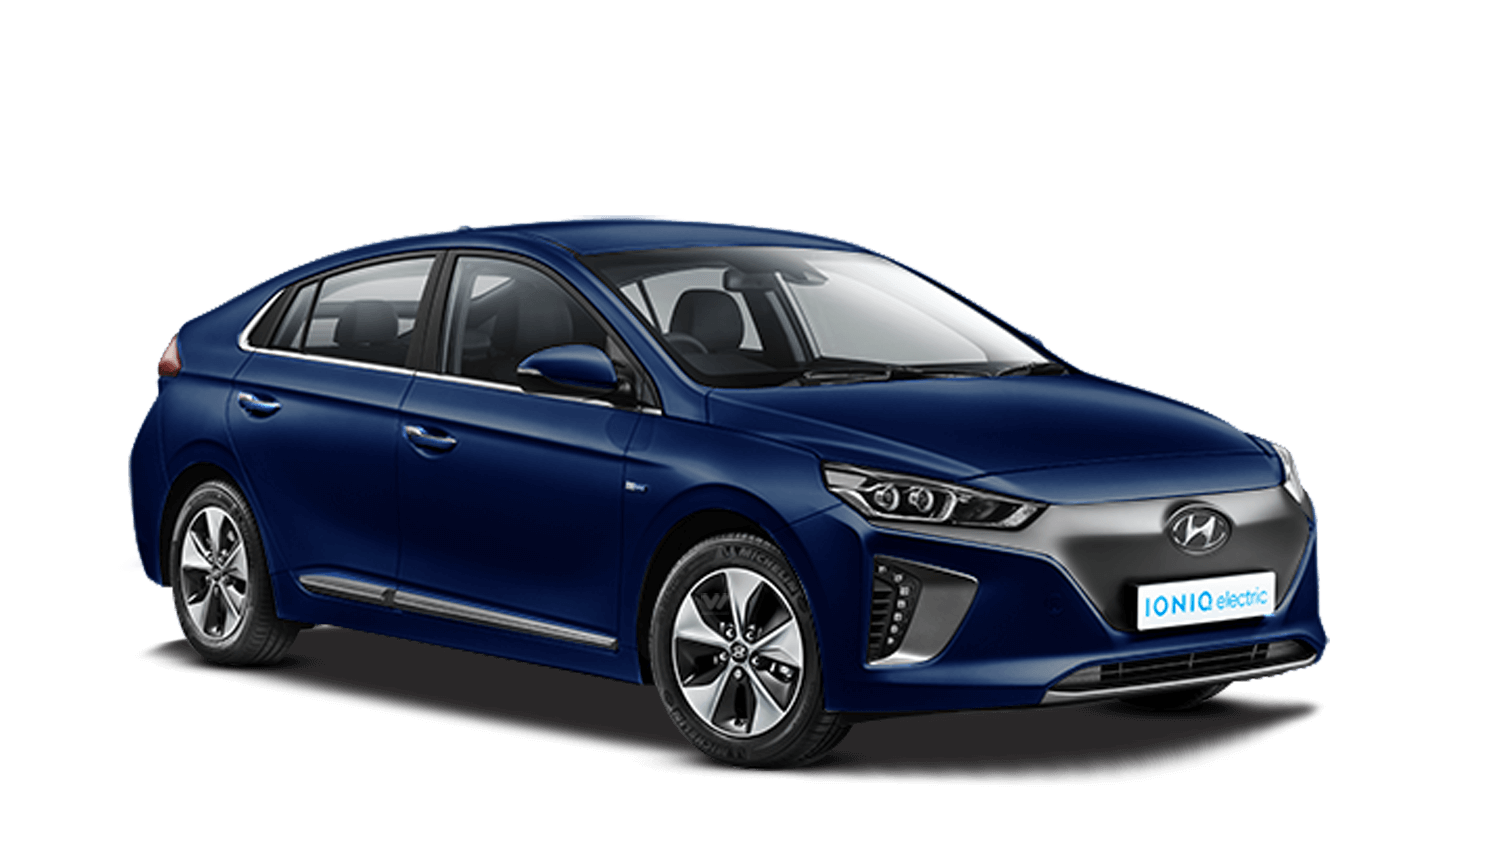 Intense Blue Hyundai Ioniq Electric